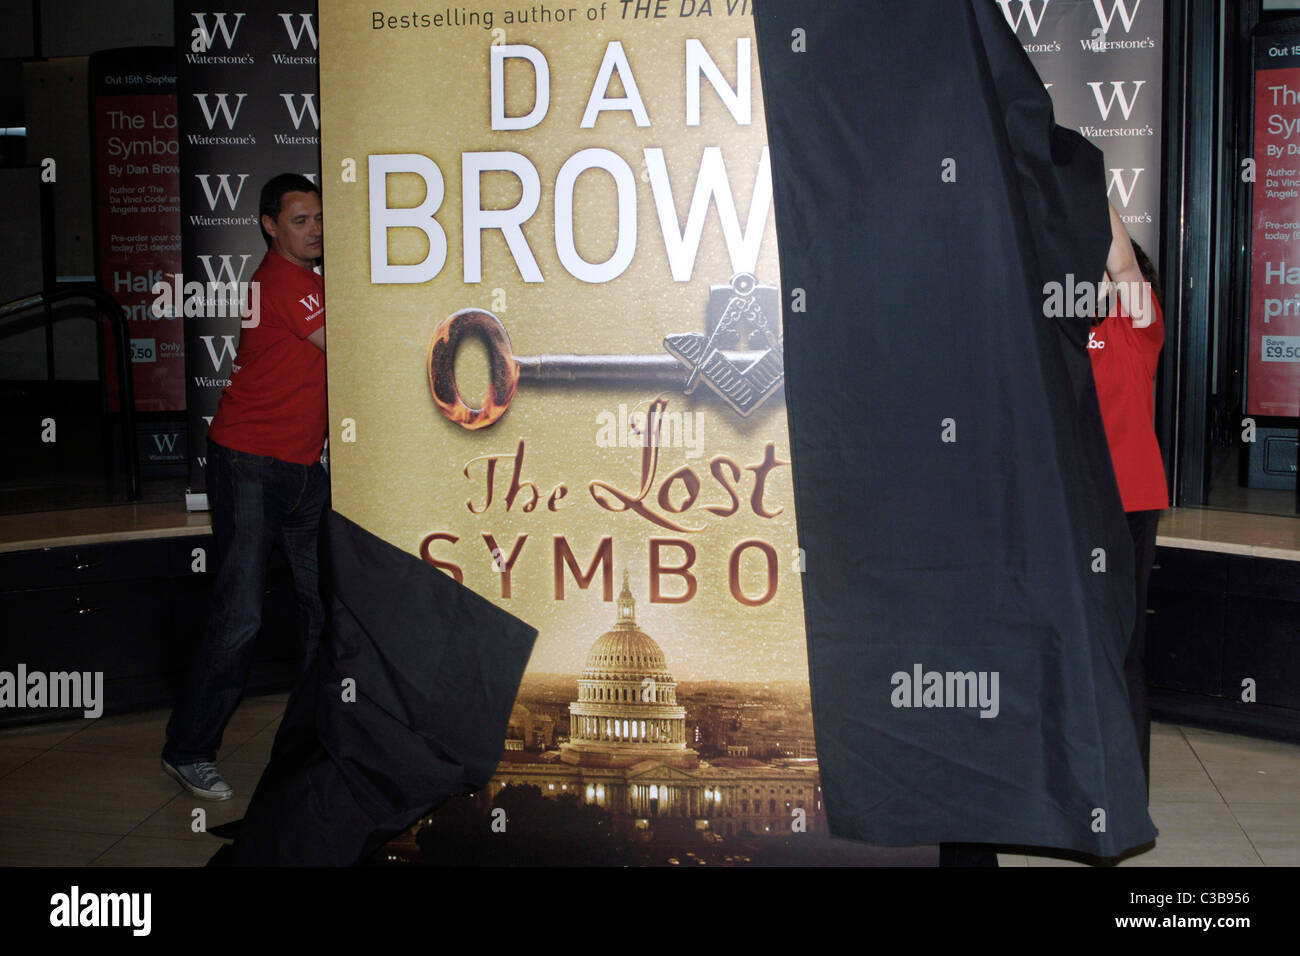 Atmosphere The Long Awaited Cover Of The New Dan Brown Novel The